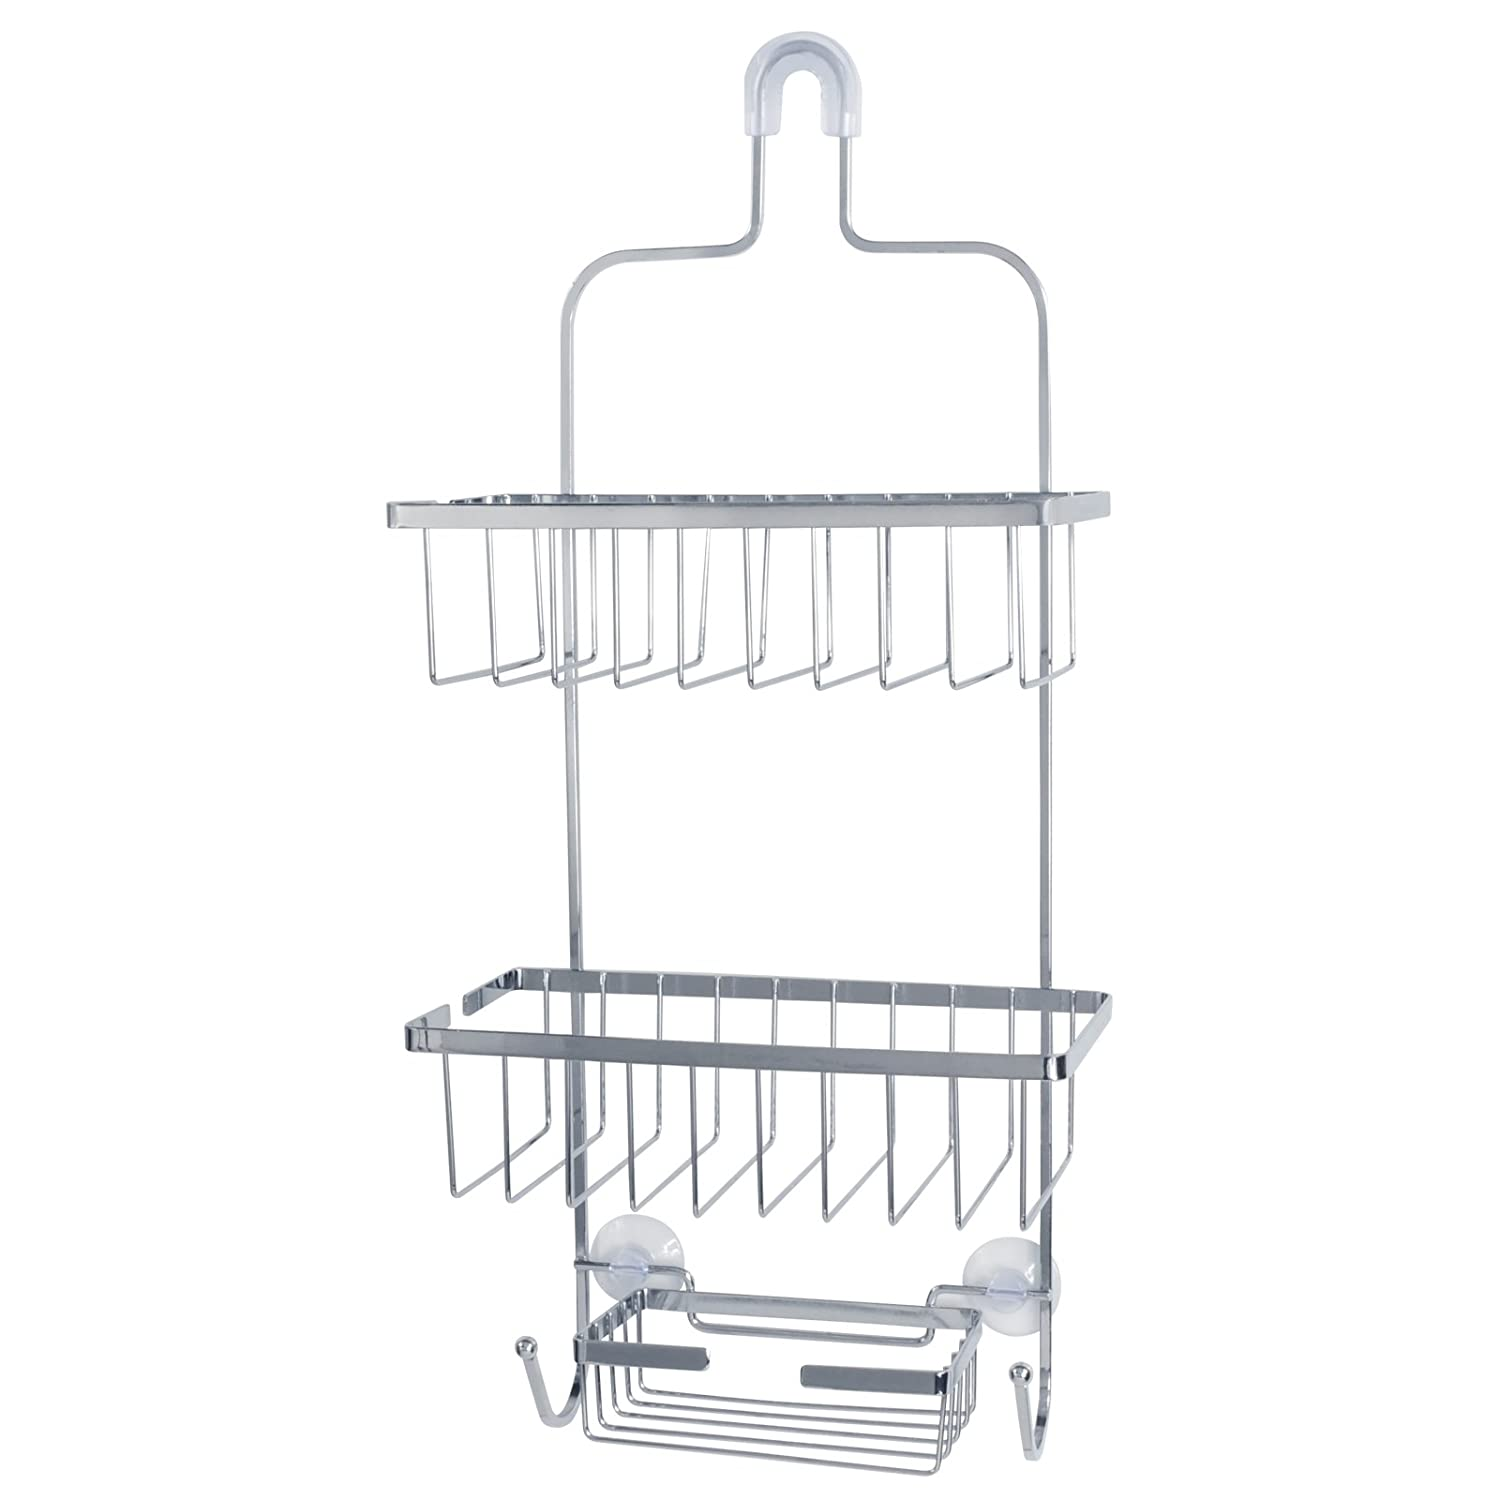 Amazon.com: Deluxe Large Hanging Shower Caddy (Chrome): Home & Kitchen